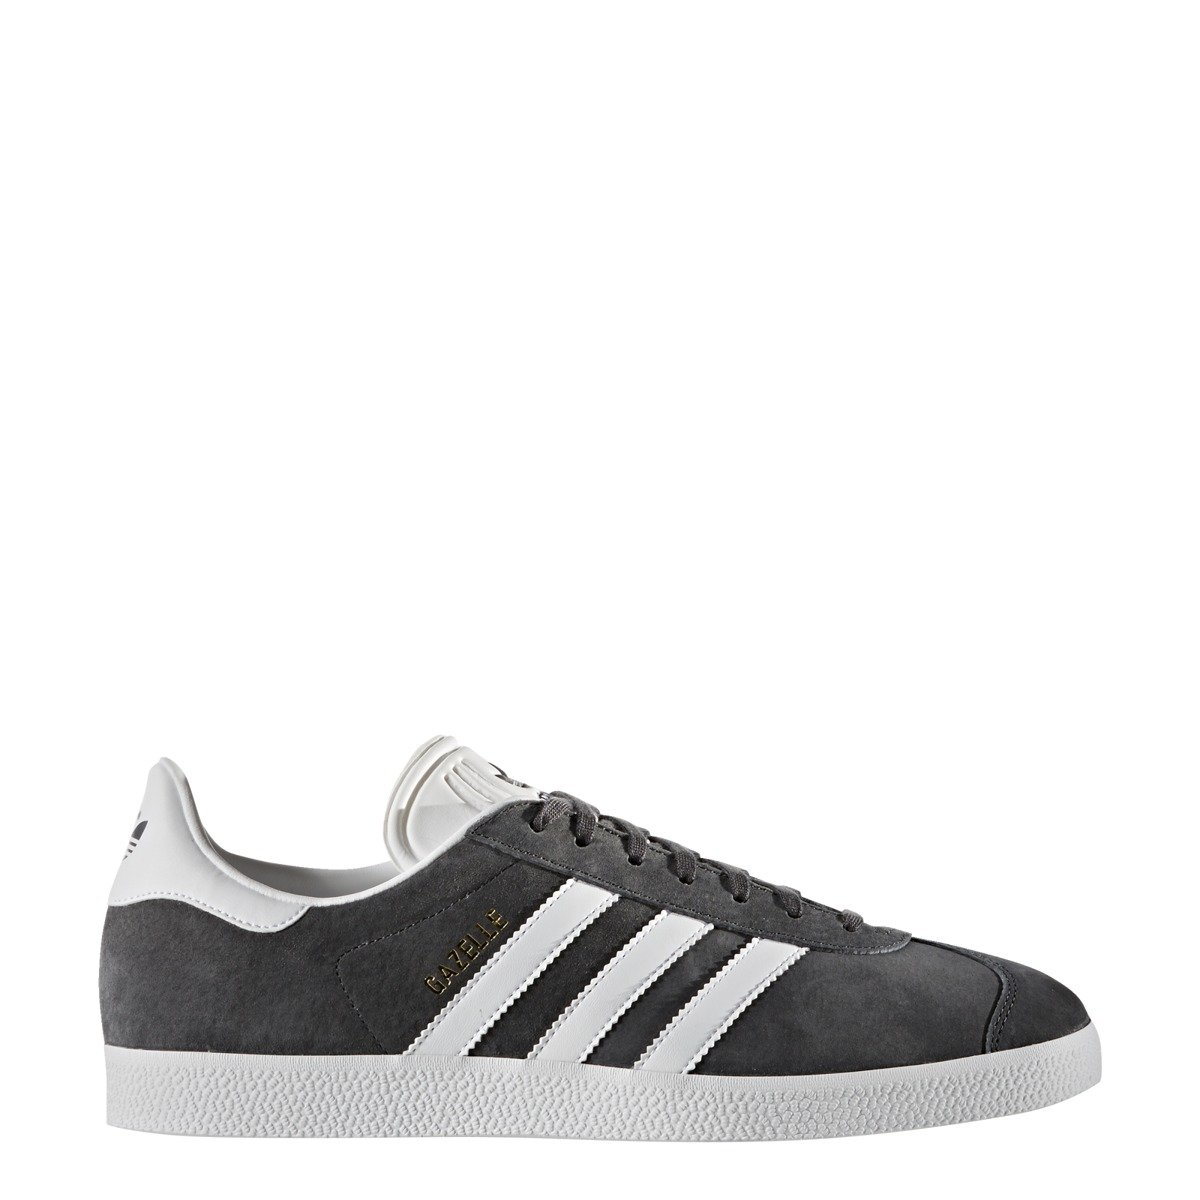 46395e219a444 Adidas Gazelle - BB5480 - Basketo.pl